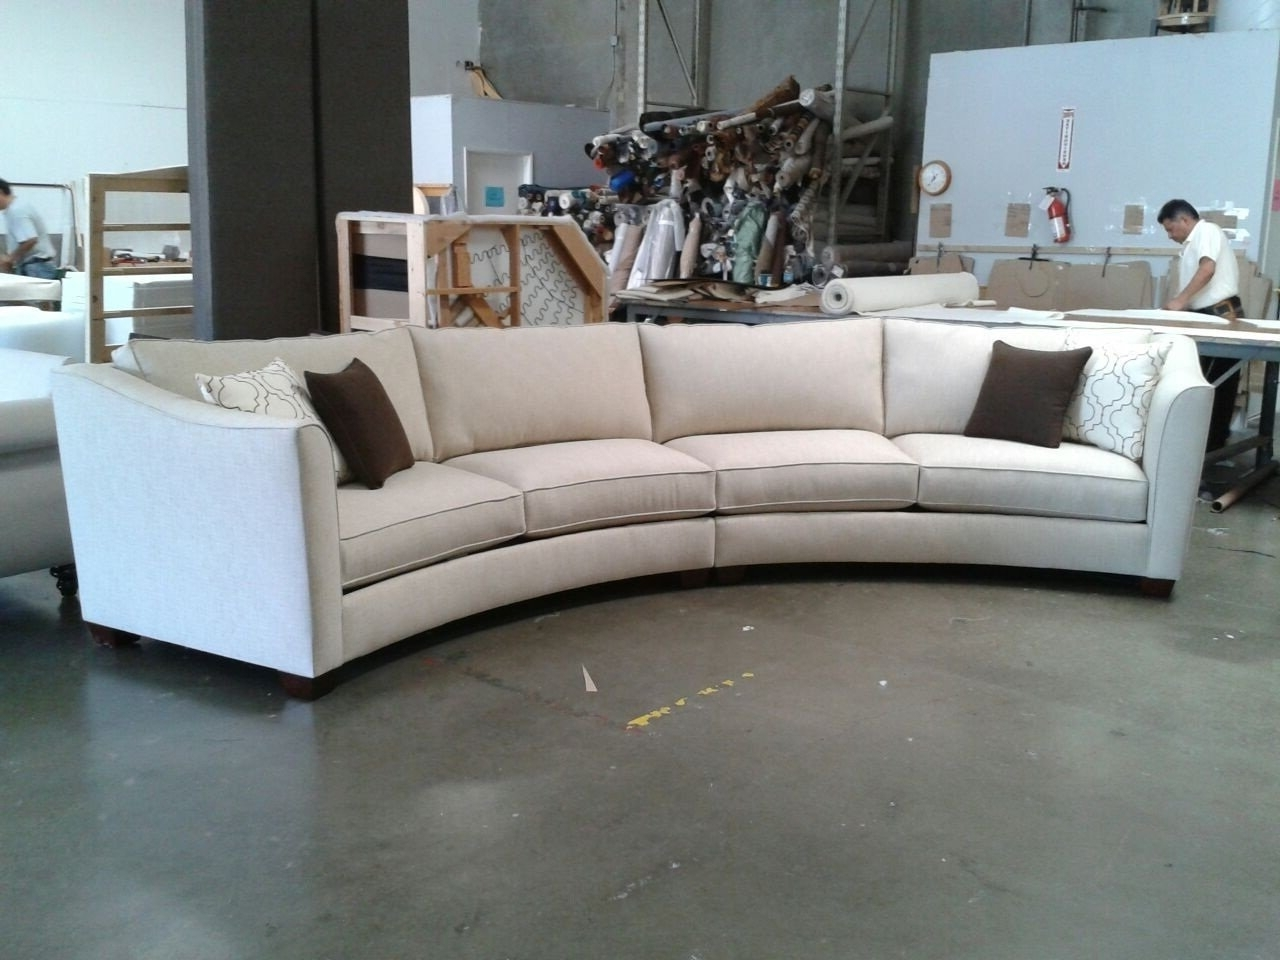 Semicircular Sofas With Best And Newest Curved Sectional Sofa Design — Cabinets, Beds, Sofas And (View 11 of 15)